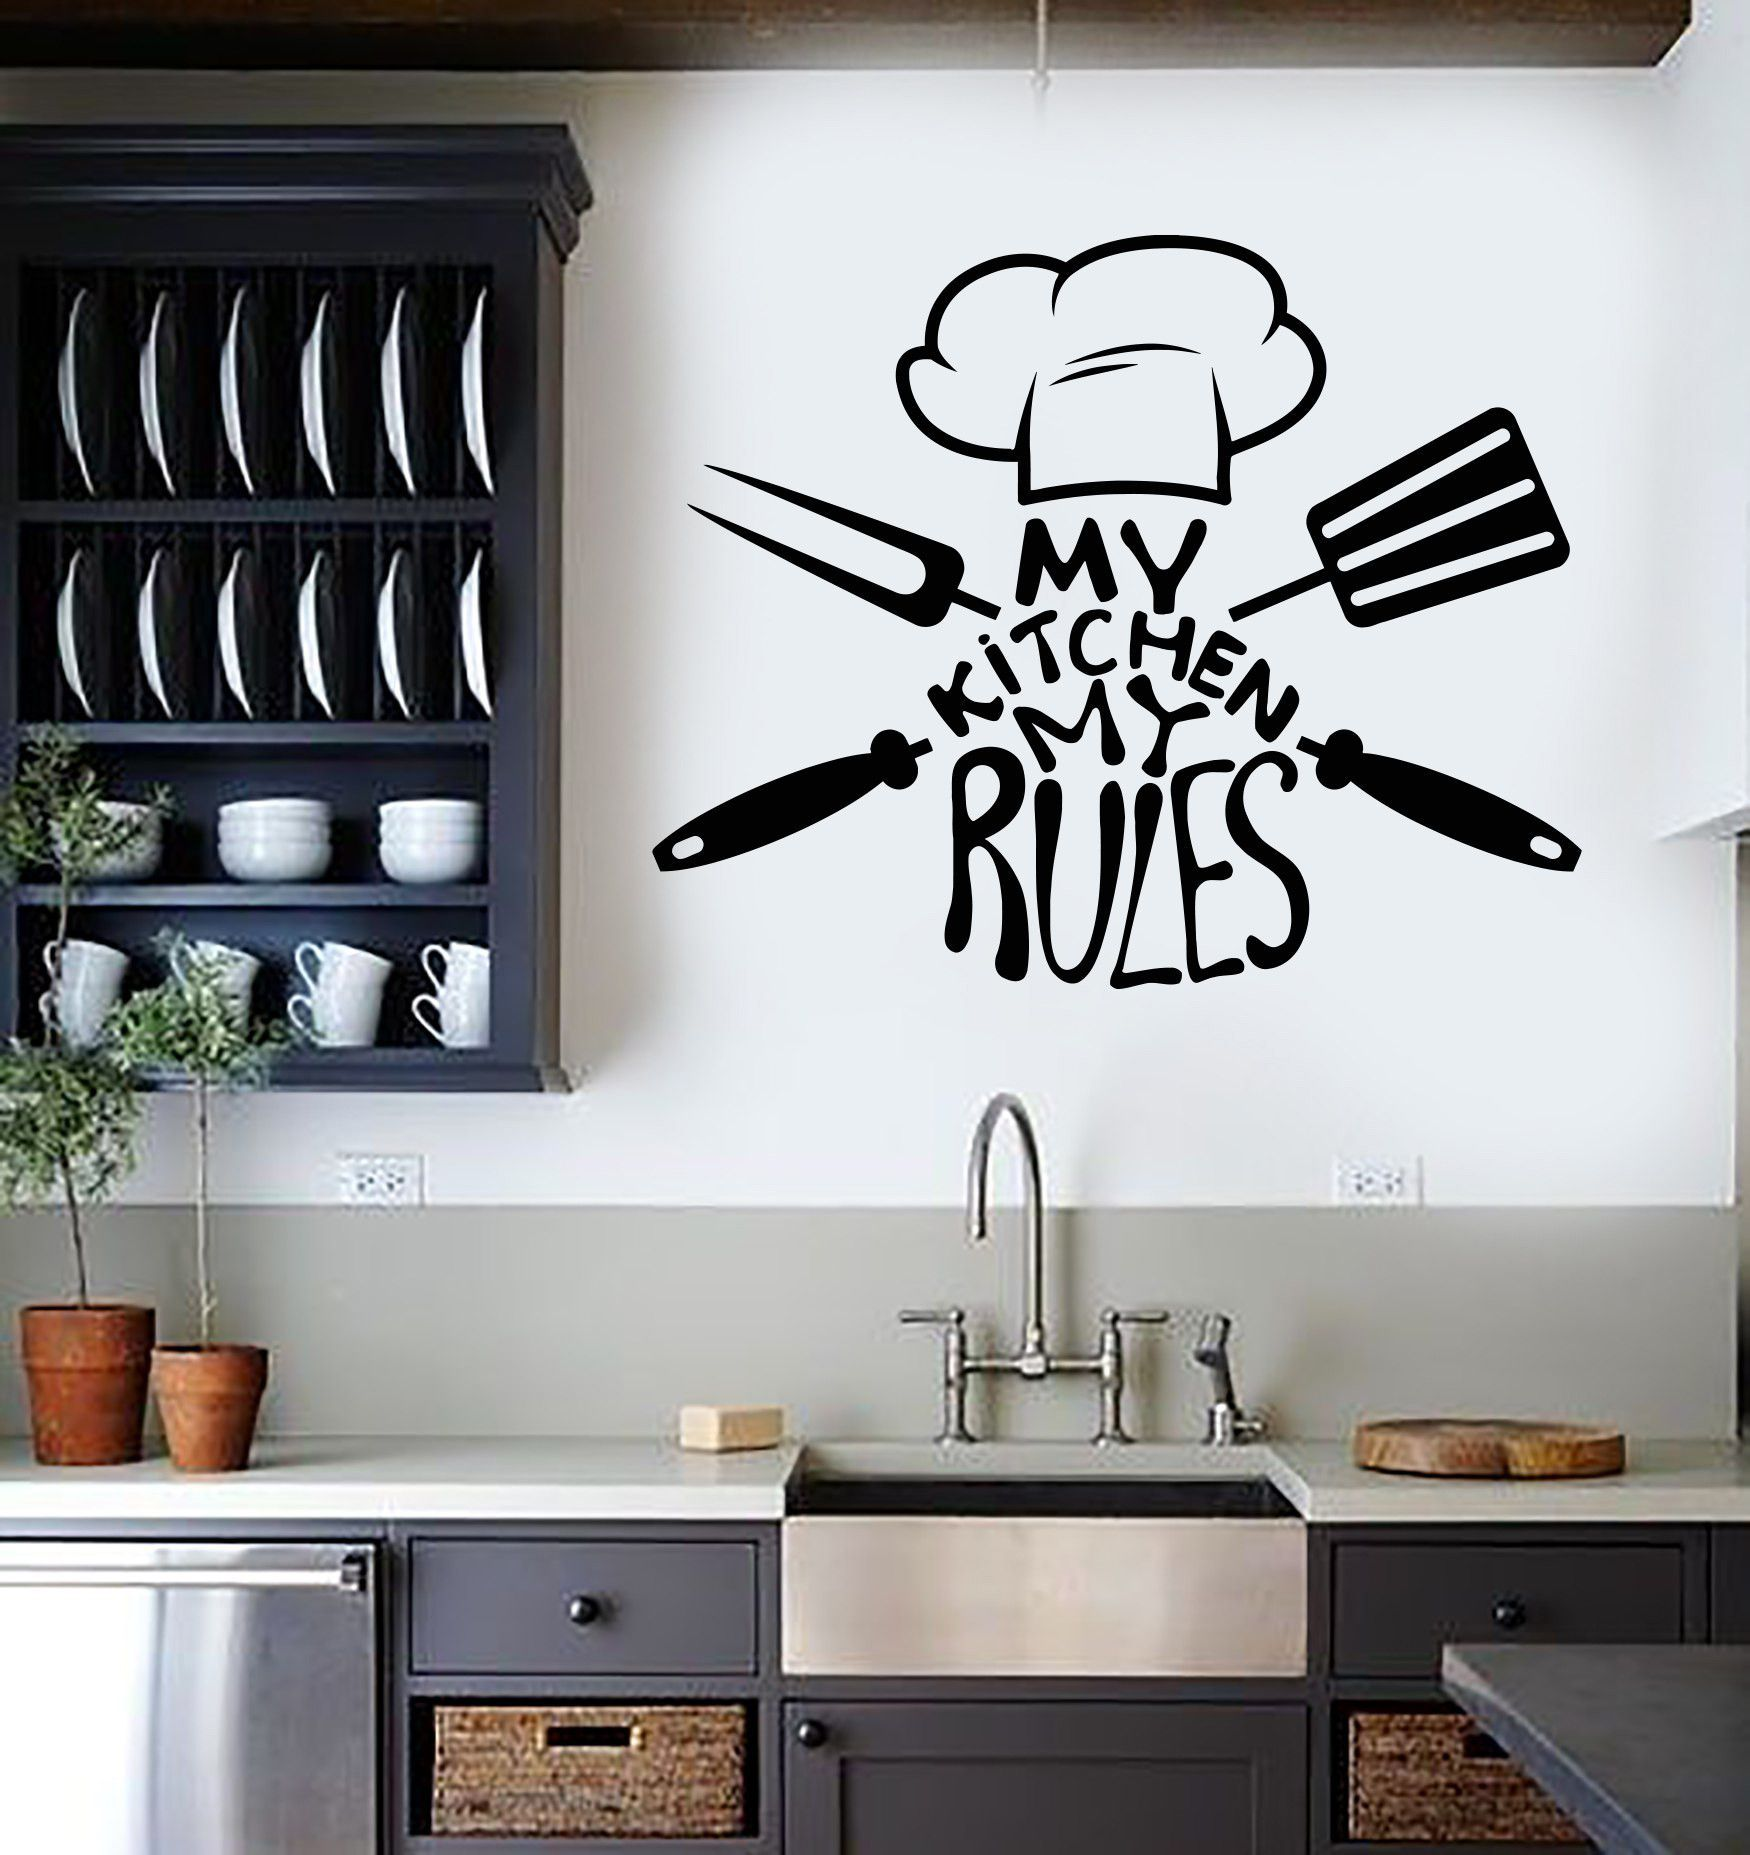 vinyl wall decal kitchen quote chef restaurant stickers mural ig3705 vinyls kitchen quotes on kitchen decor quotes wall decals id=76817